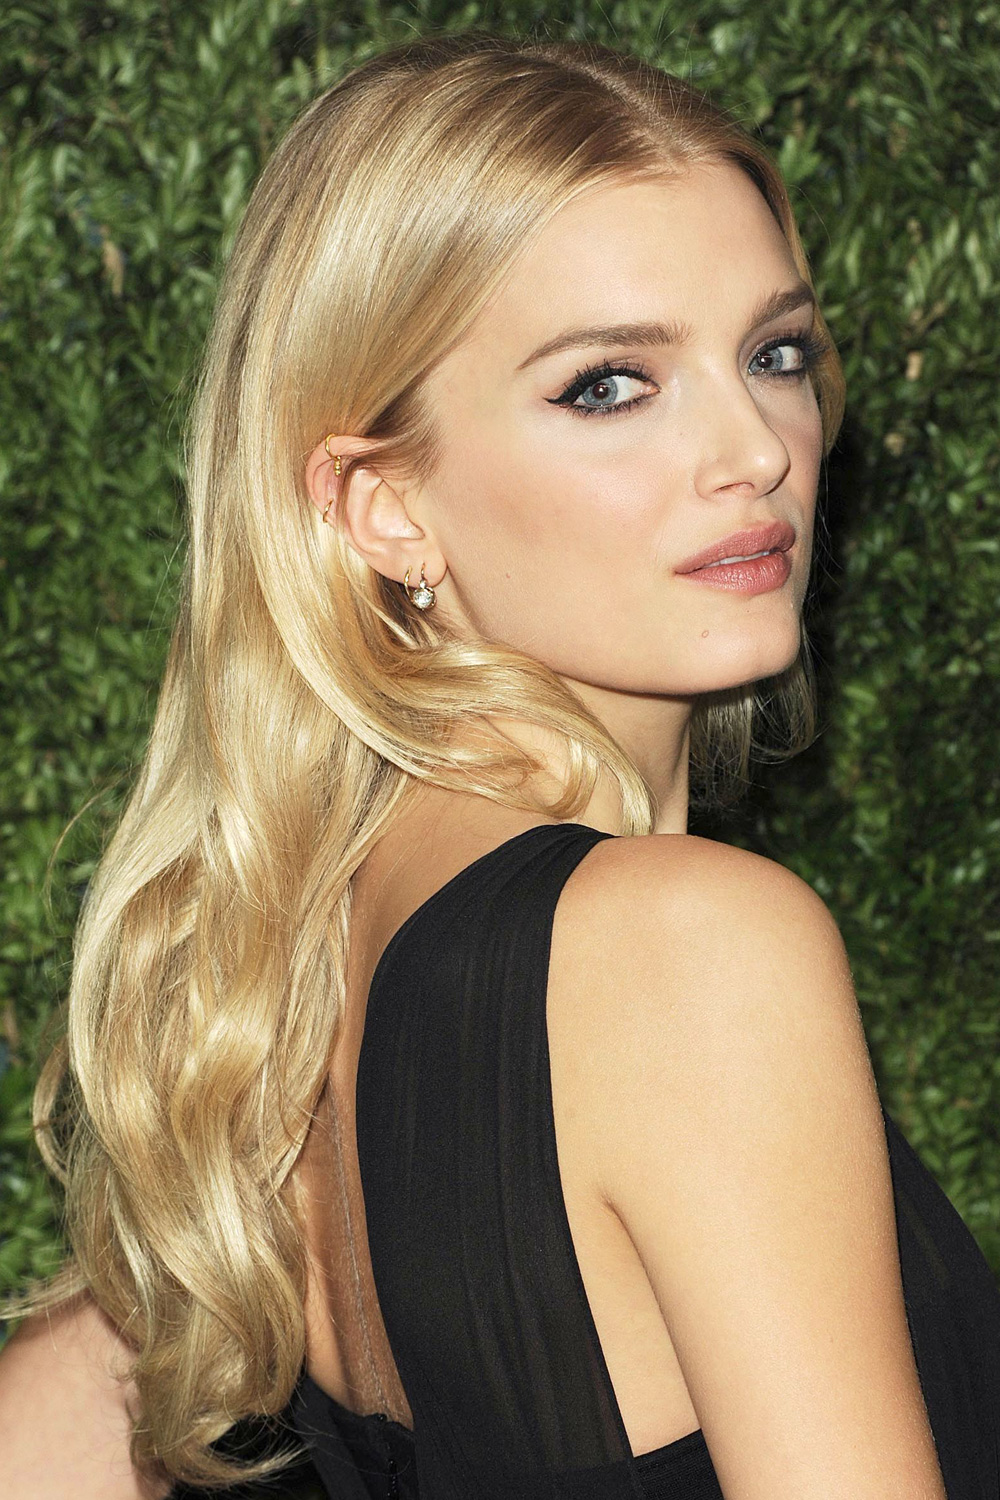 Admirable Blonde Hairstyles The Marie Claire Guide To Getting It Just Right Hairstyle Inspiration Daily Dogsangcom